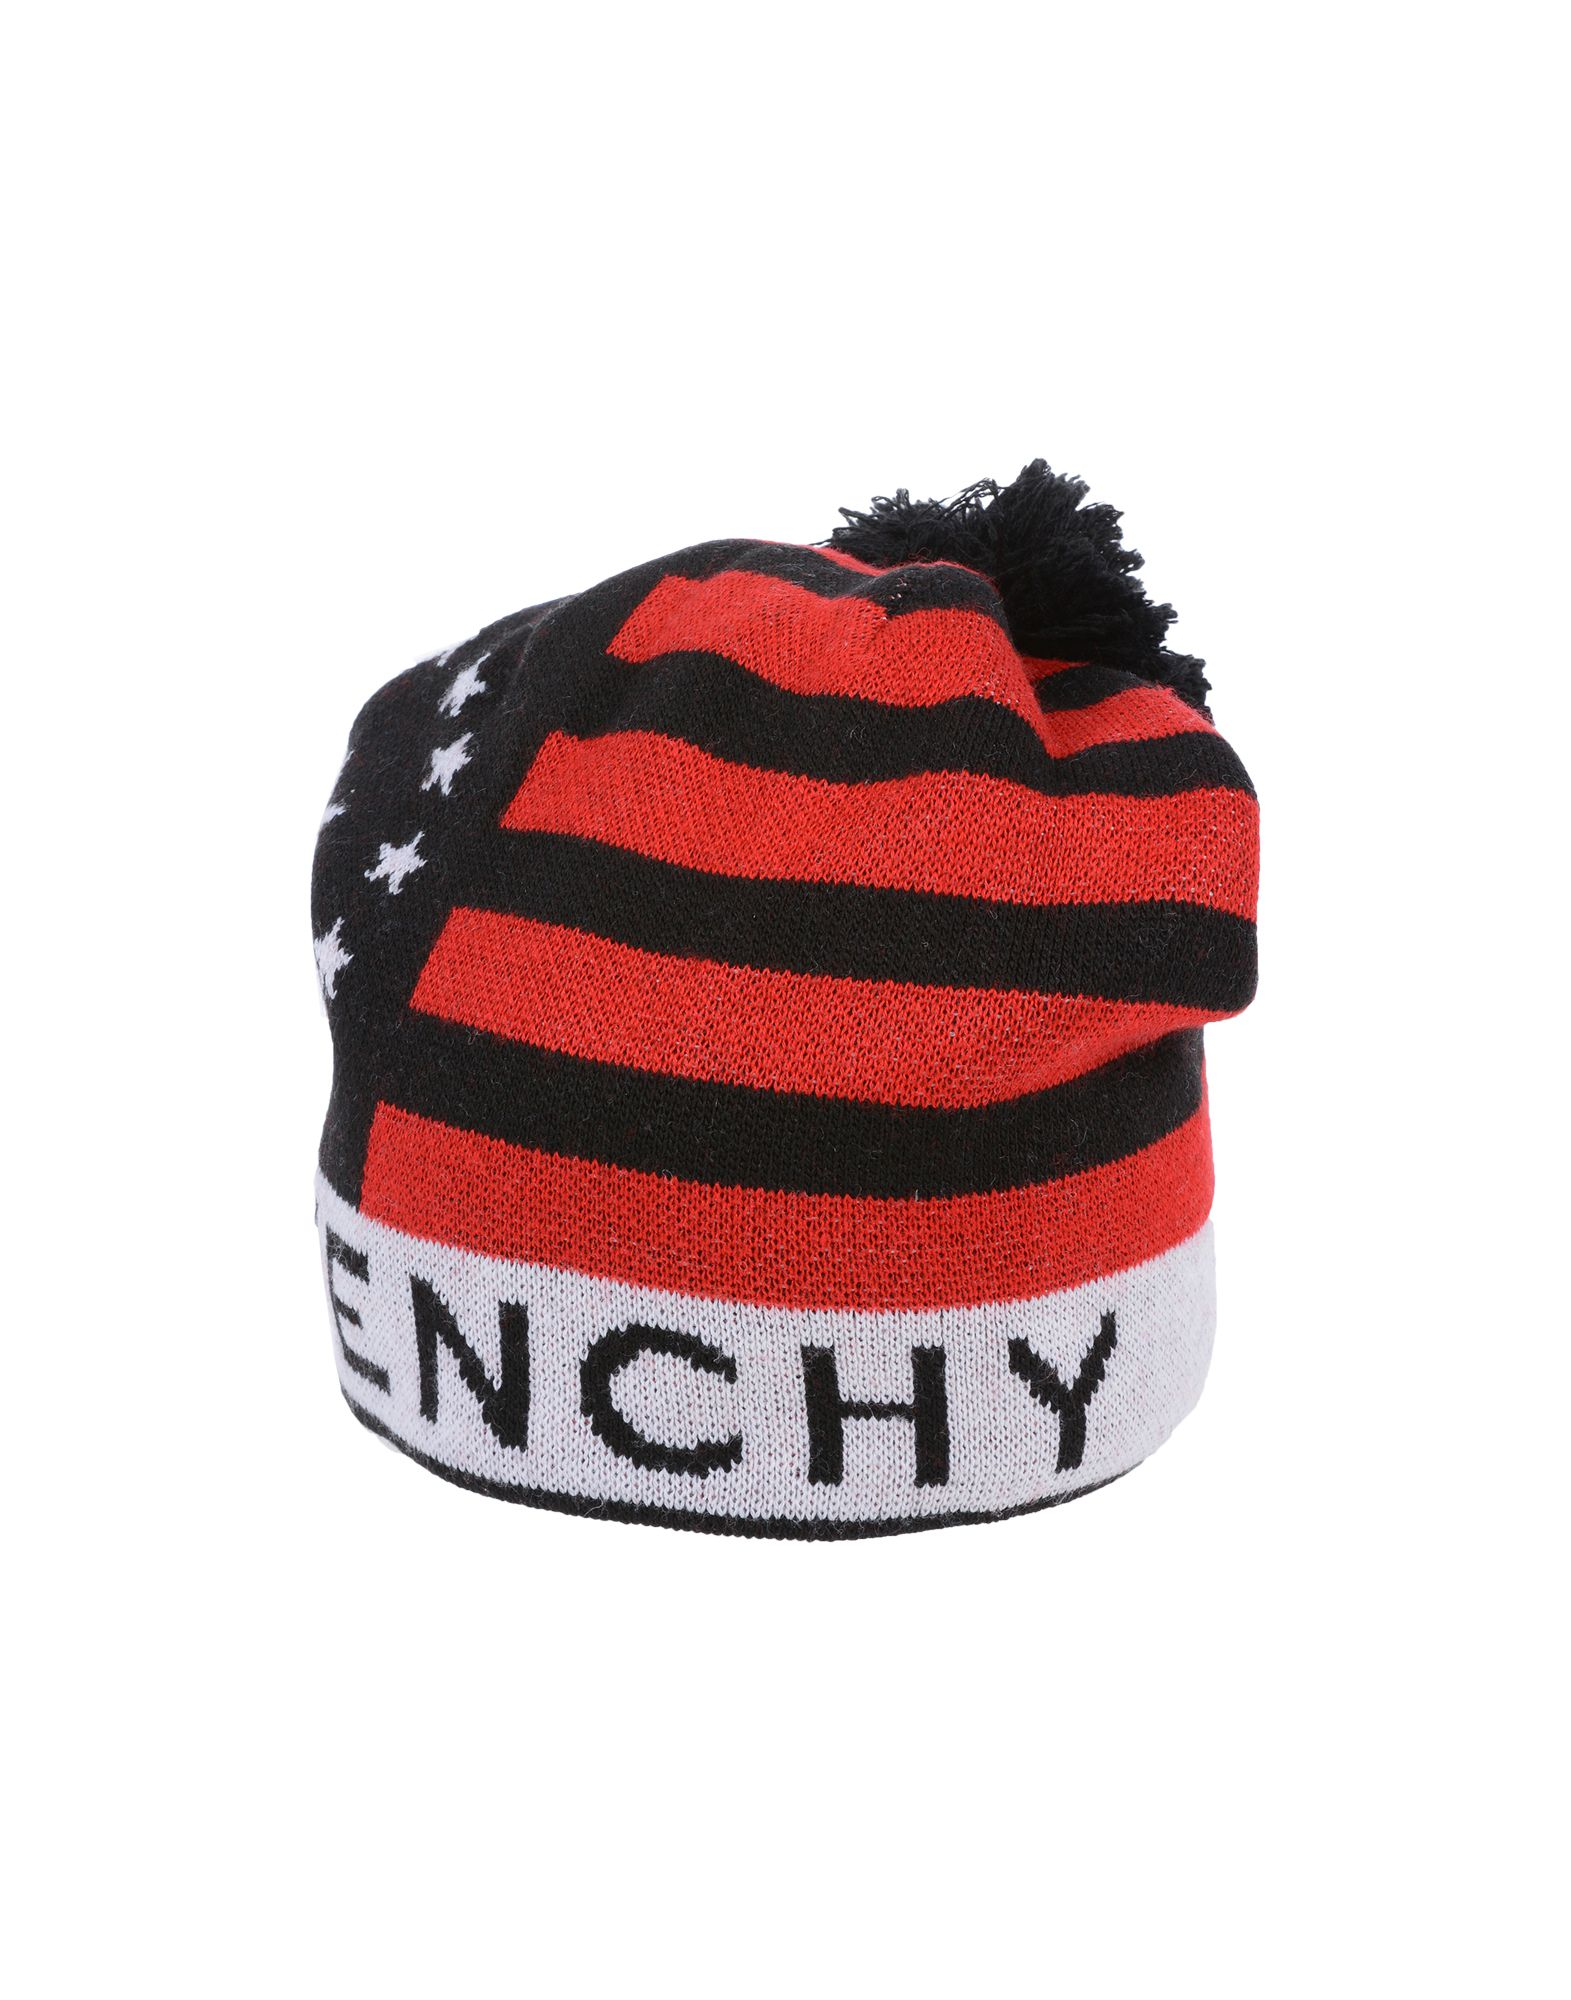 06c434bd2 GIVENCHY Hat - Accessories | YOOX.COM